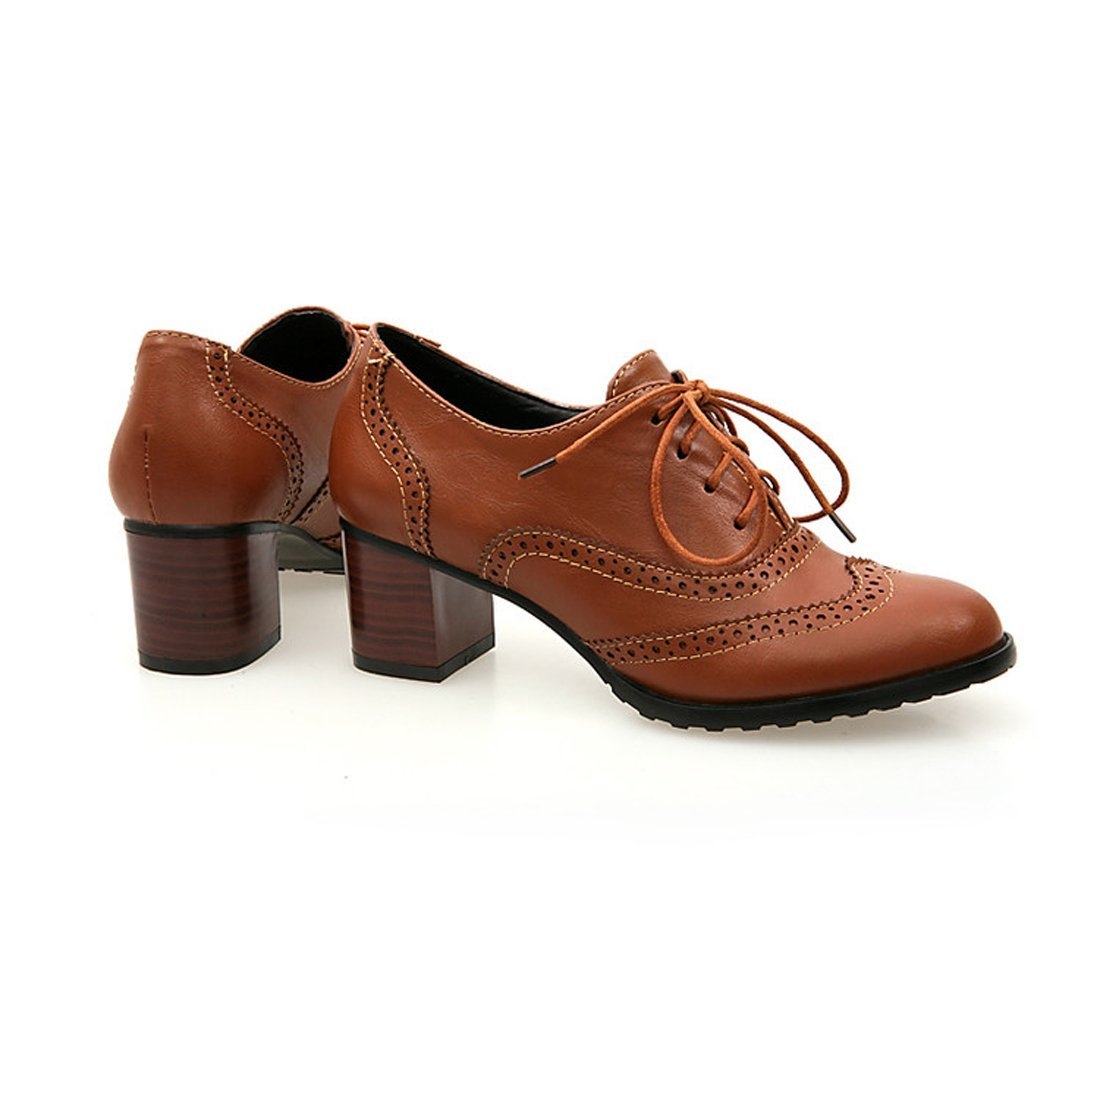 England Brogue Shoe Womens Lace-up Mid Heel Wingtip Oxfords Vintage PU Leather Shoes 2